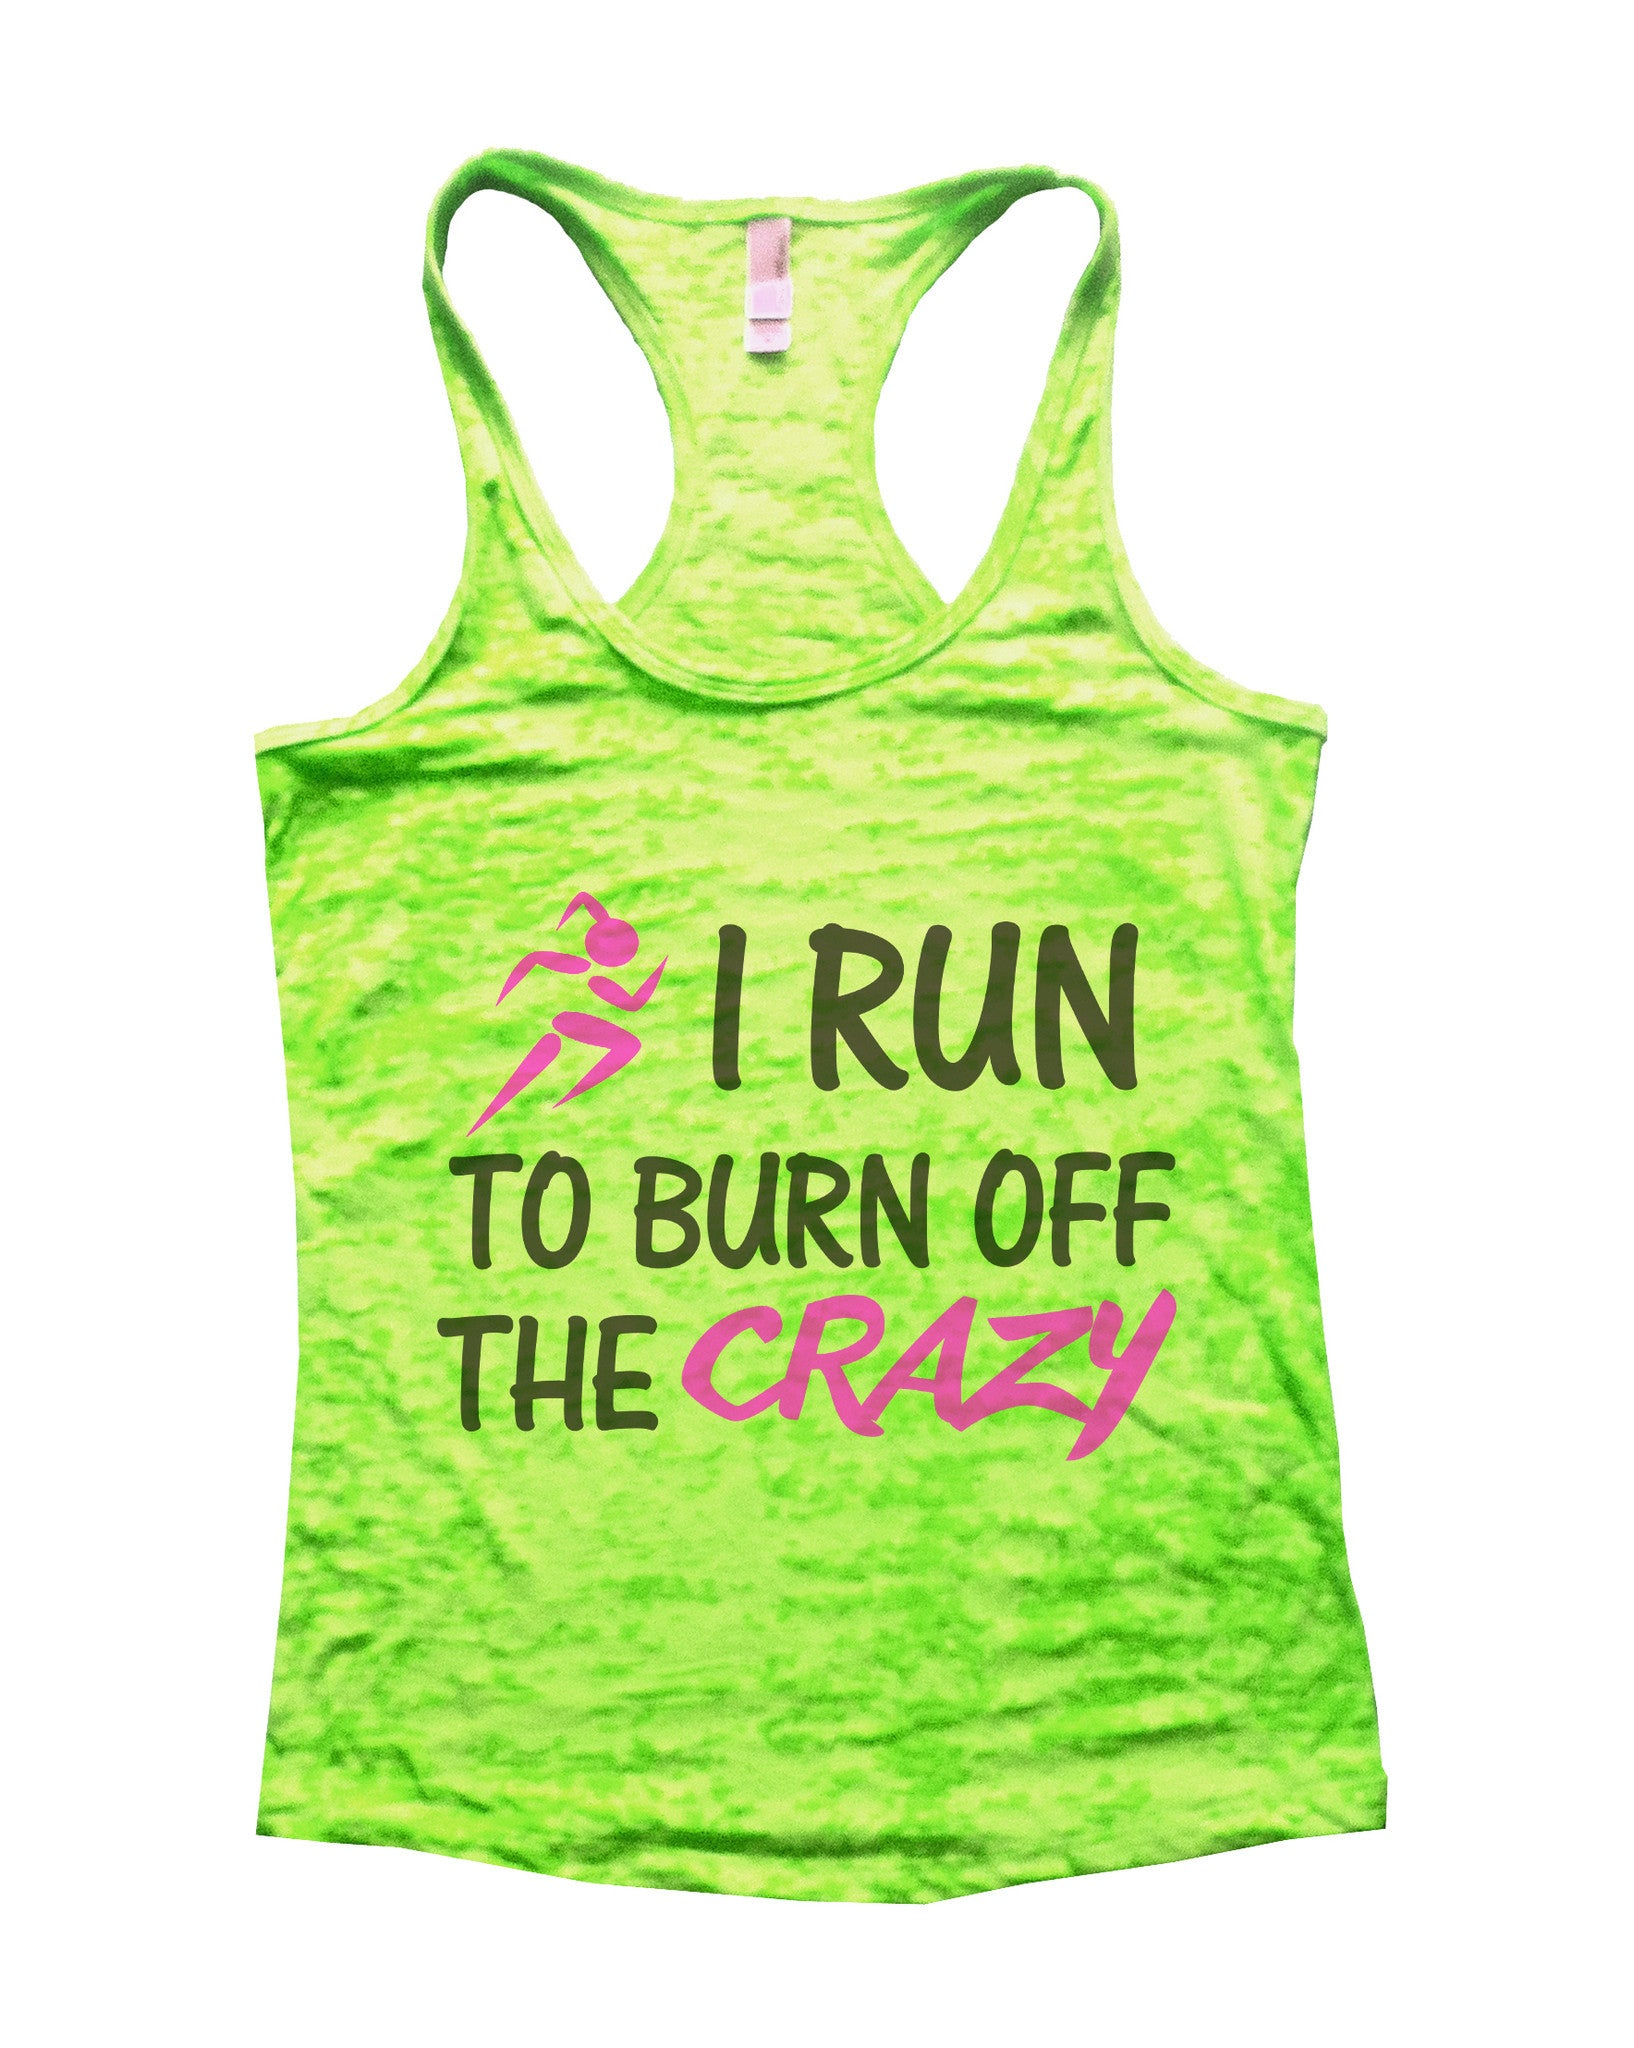 I Run to Burn Off The Crazy Womens Burnout Tank Top by BurnoutTankTops.com - Funny Shirts Tank Tops Burnouts and Triblends  - 6